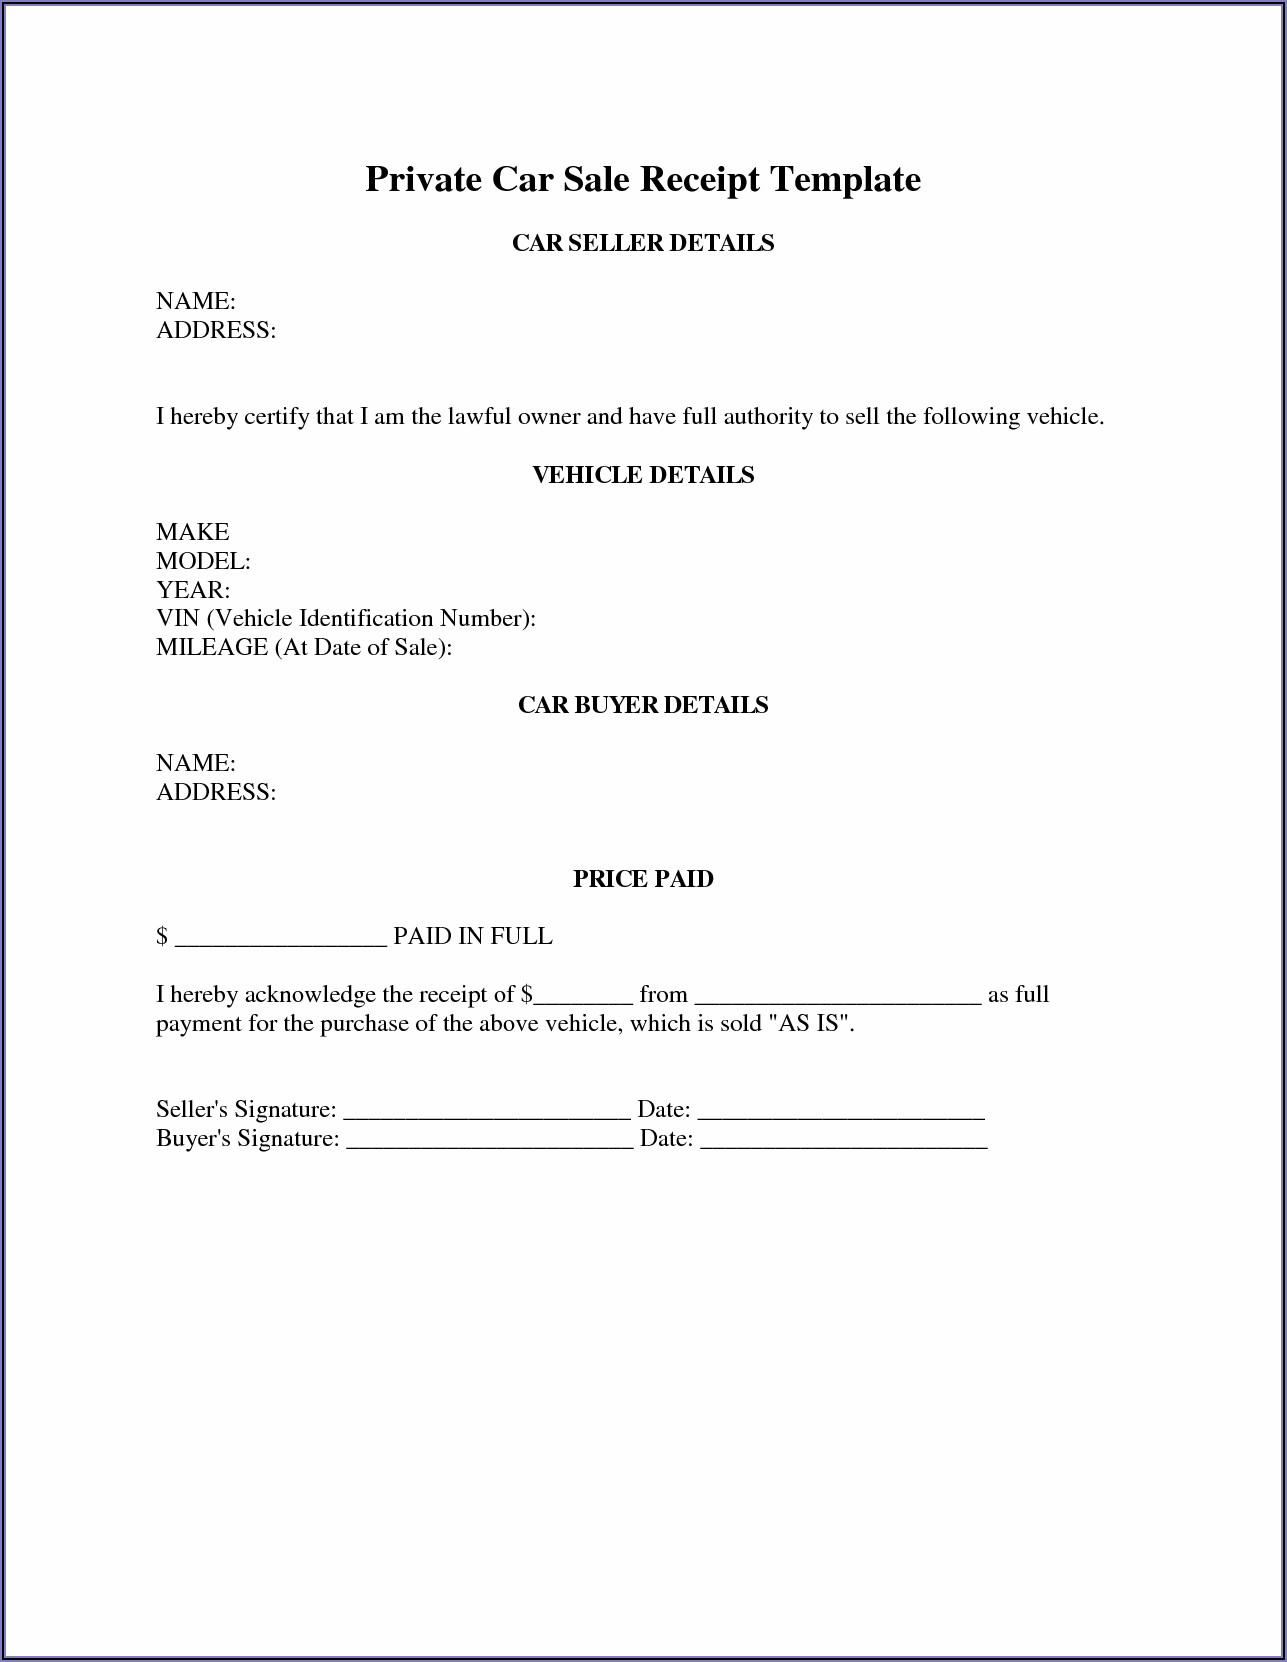 Car Sales Receipt Template Australia